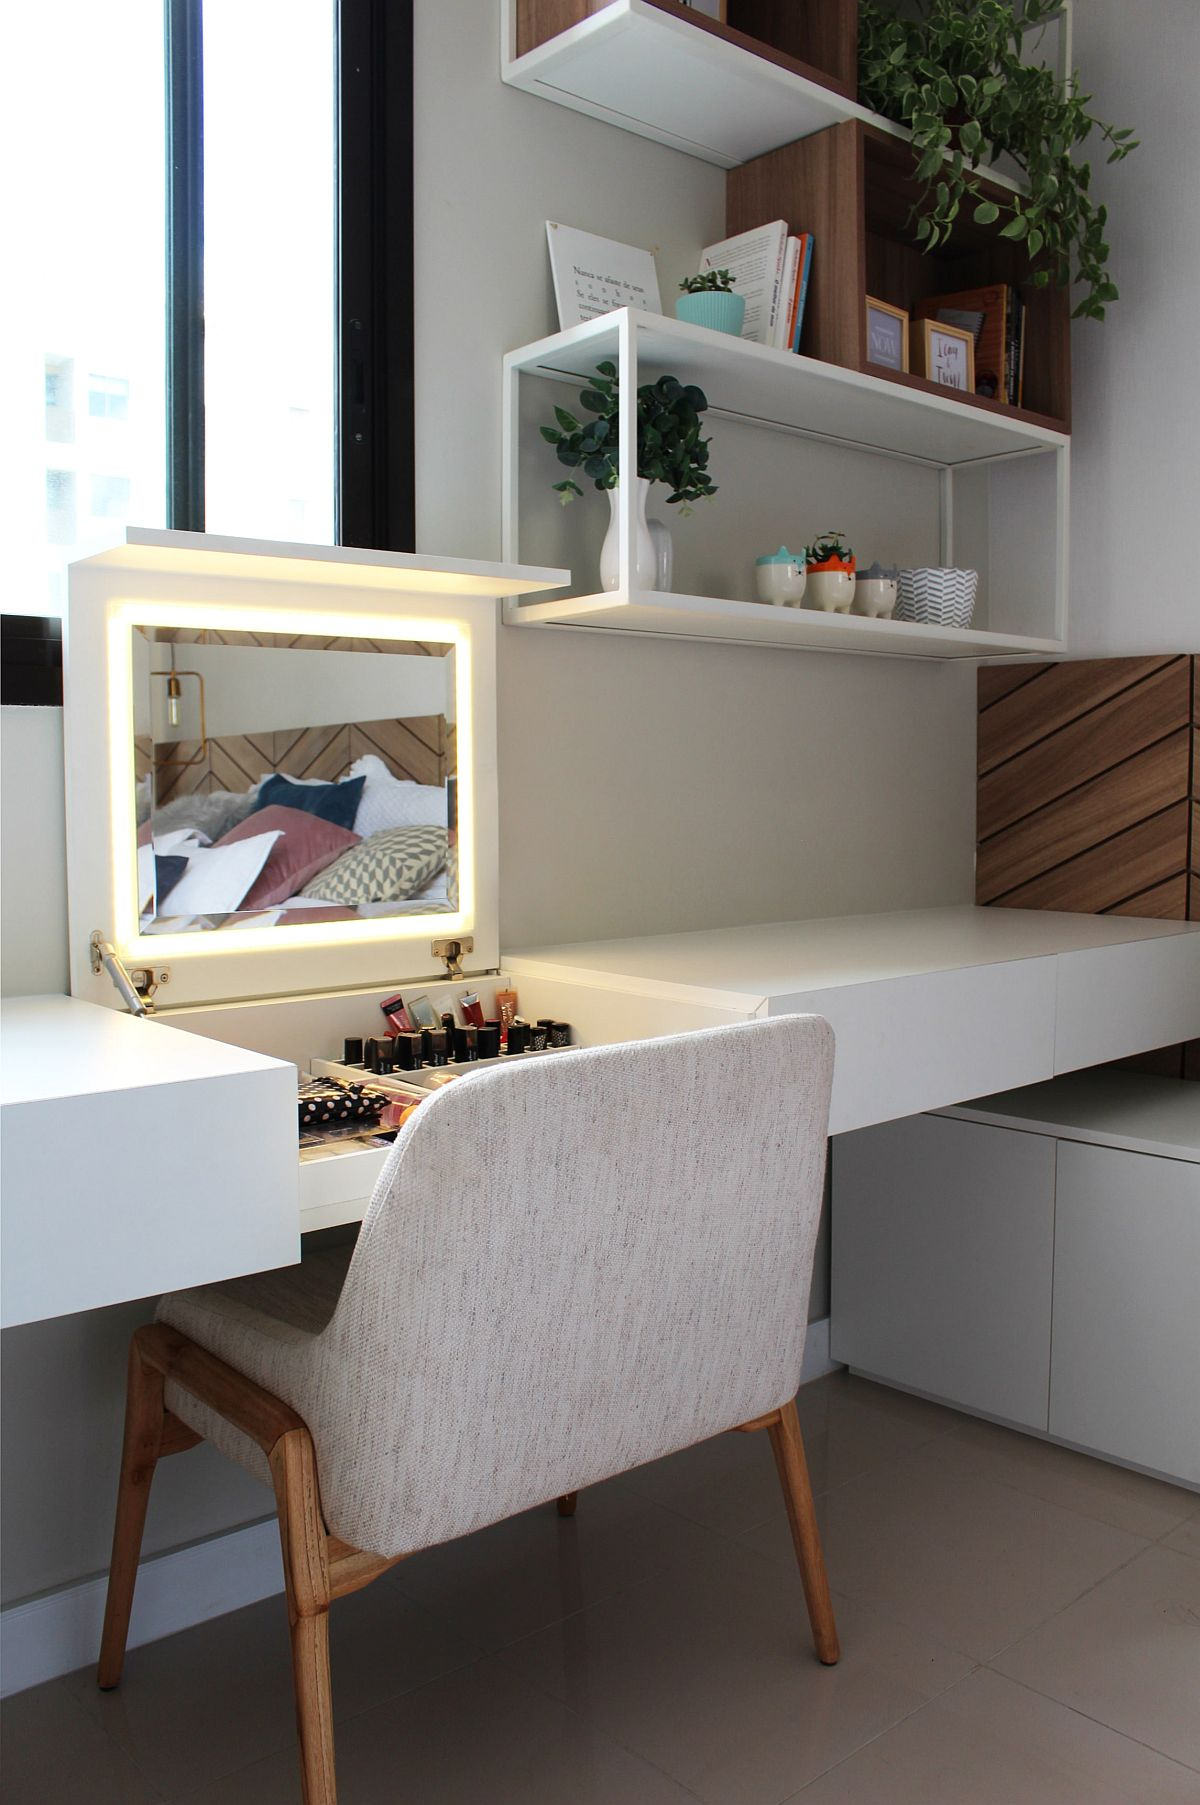 Bedroom study space along with storage units for beauty accessories and a space-savvy mirror